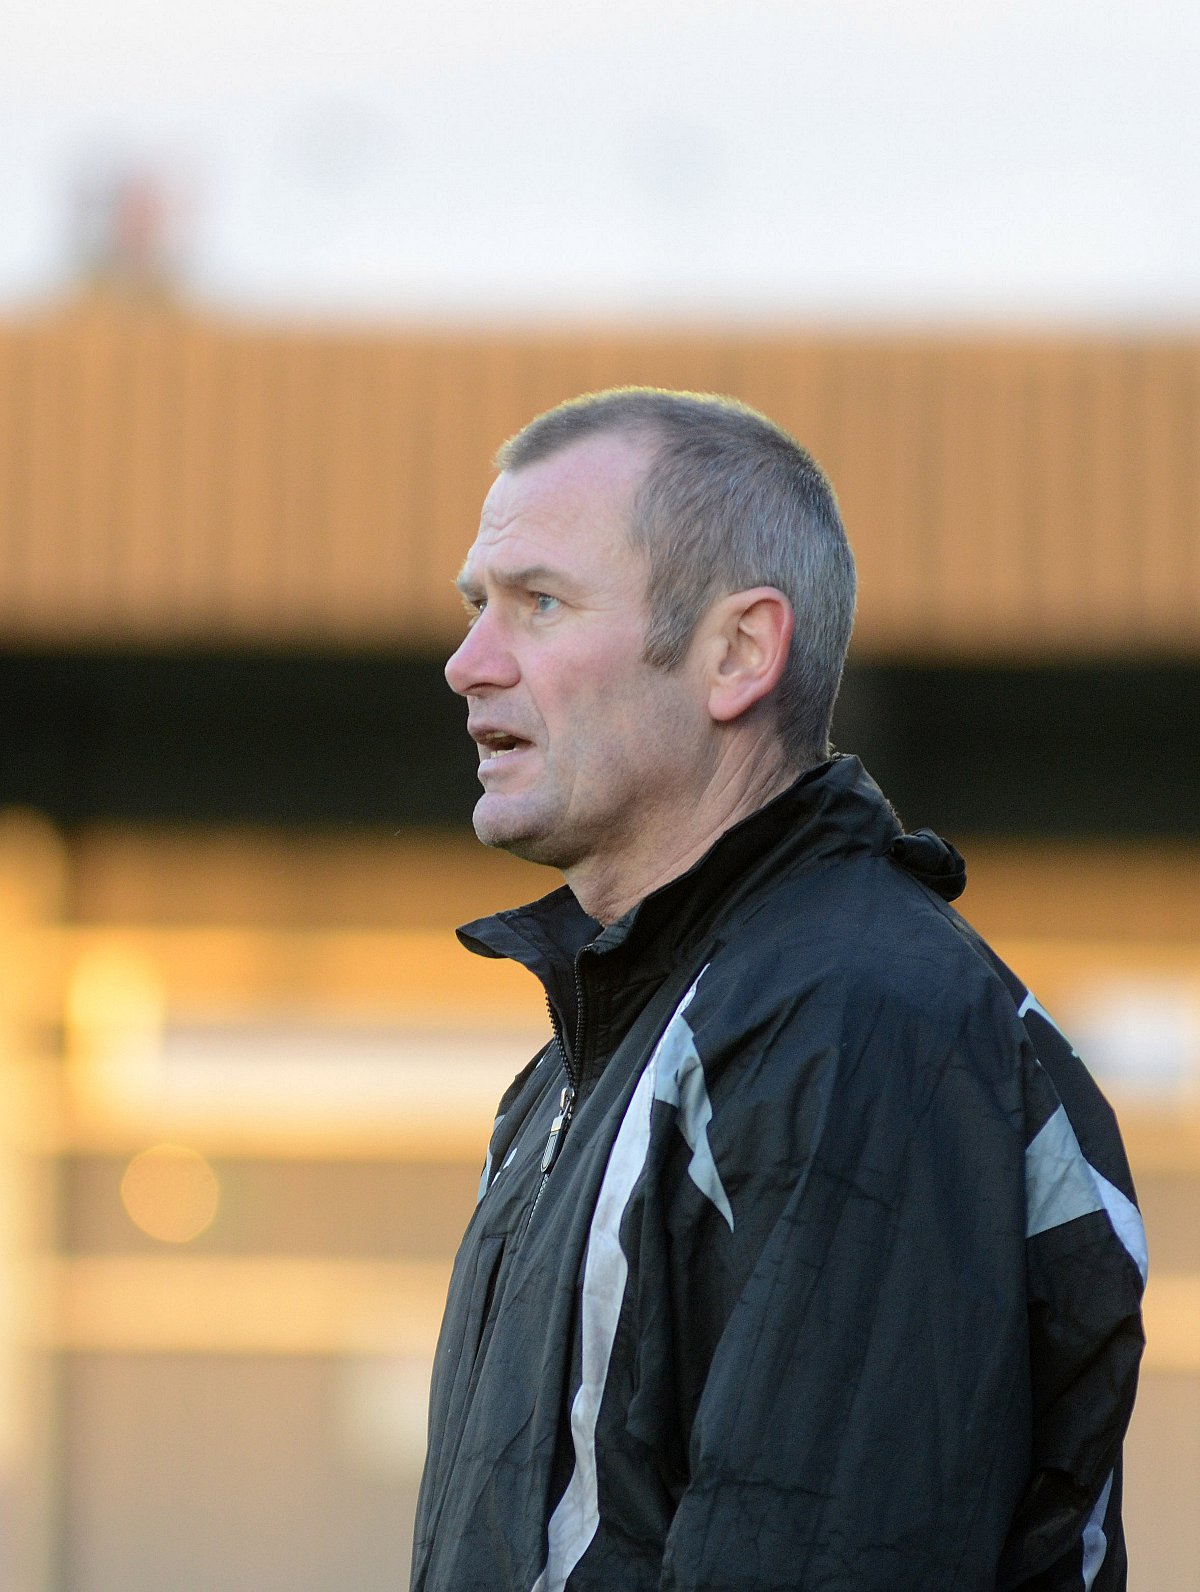 Livid: Ks boss Alan Dowson was fuming on Monday but has vowed to draw a line under the defeat and move on